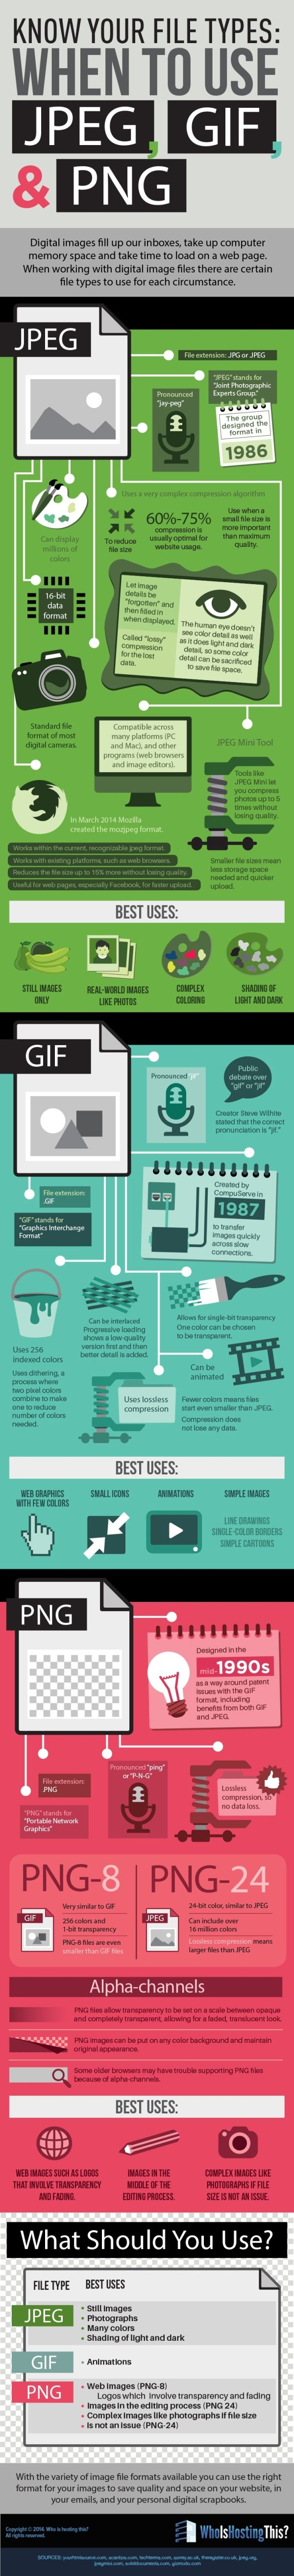 when-to-use-image-files-infographic